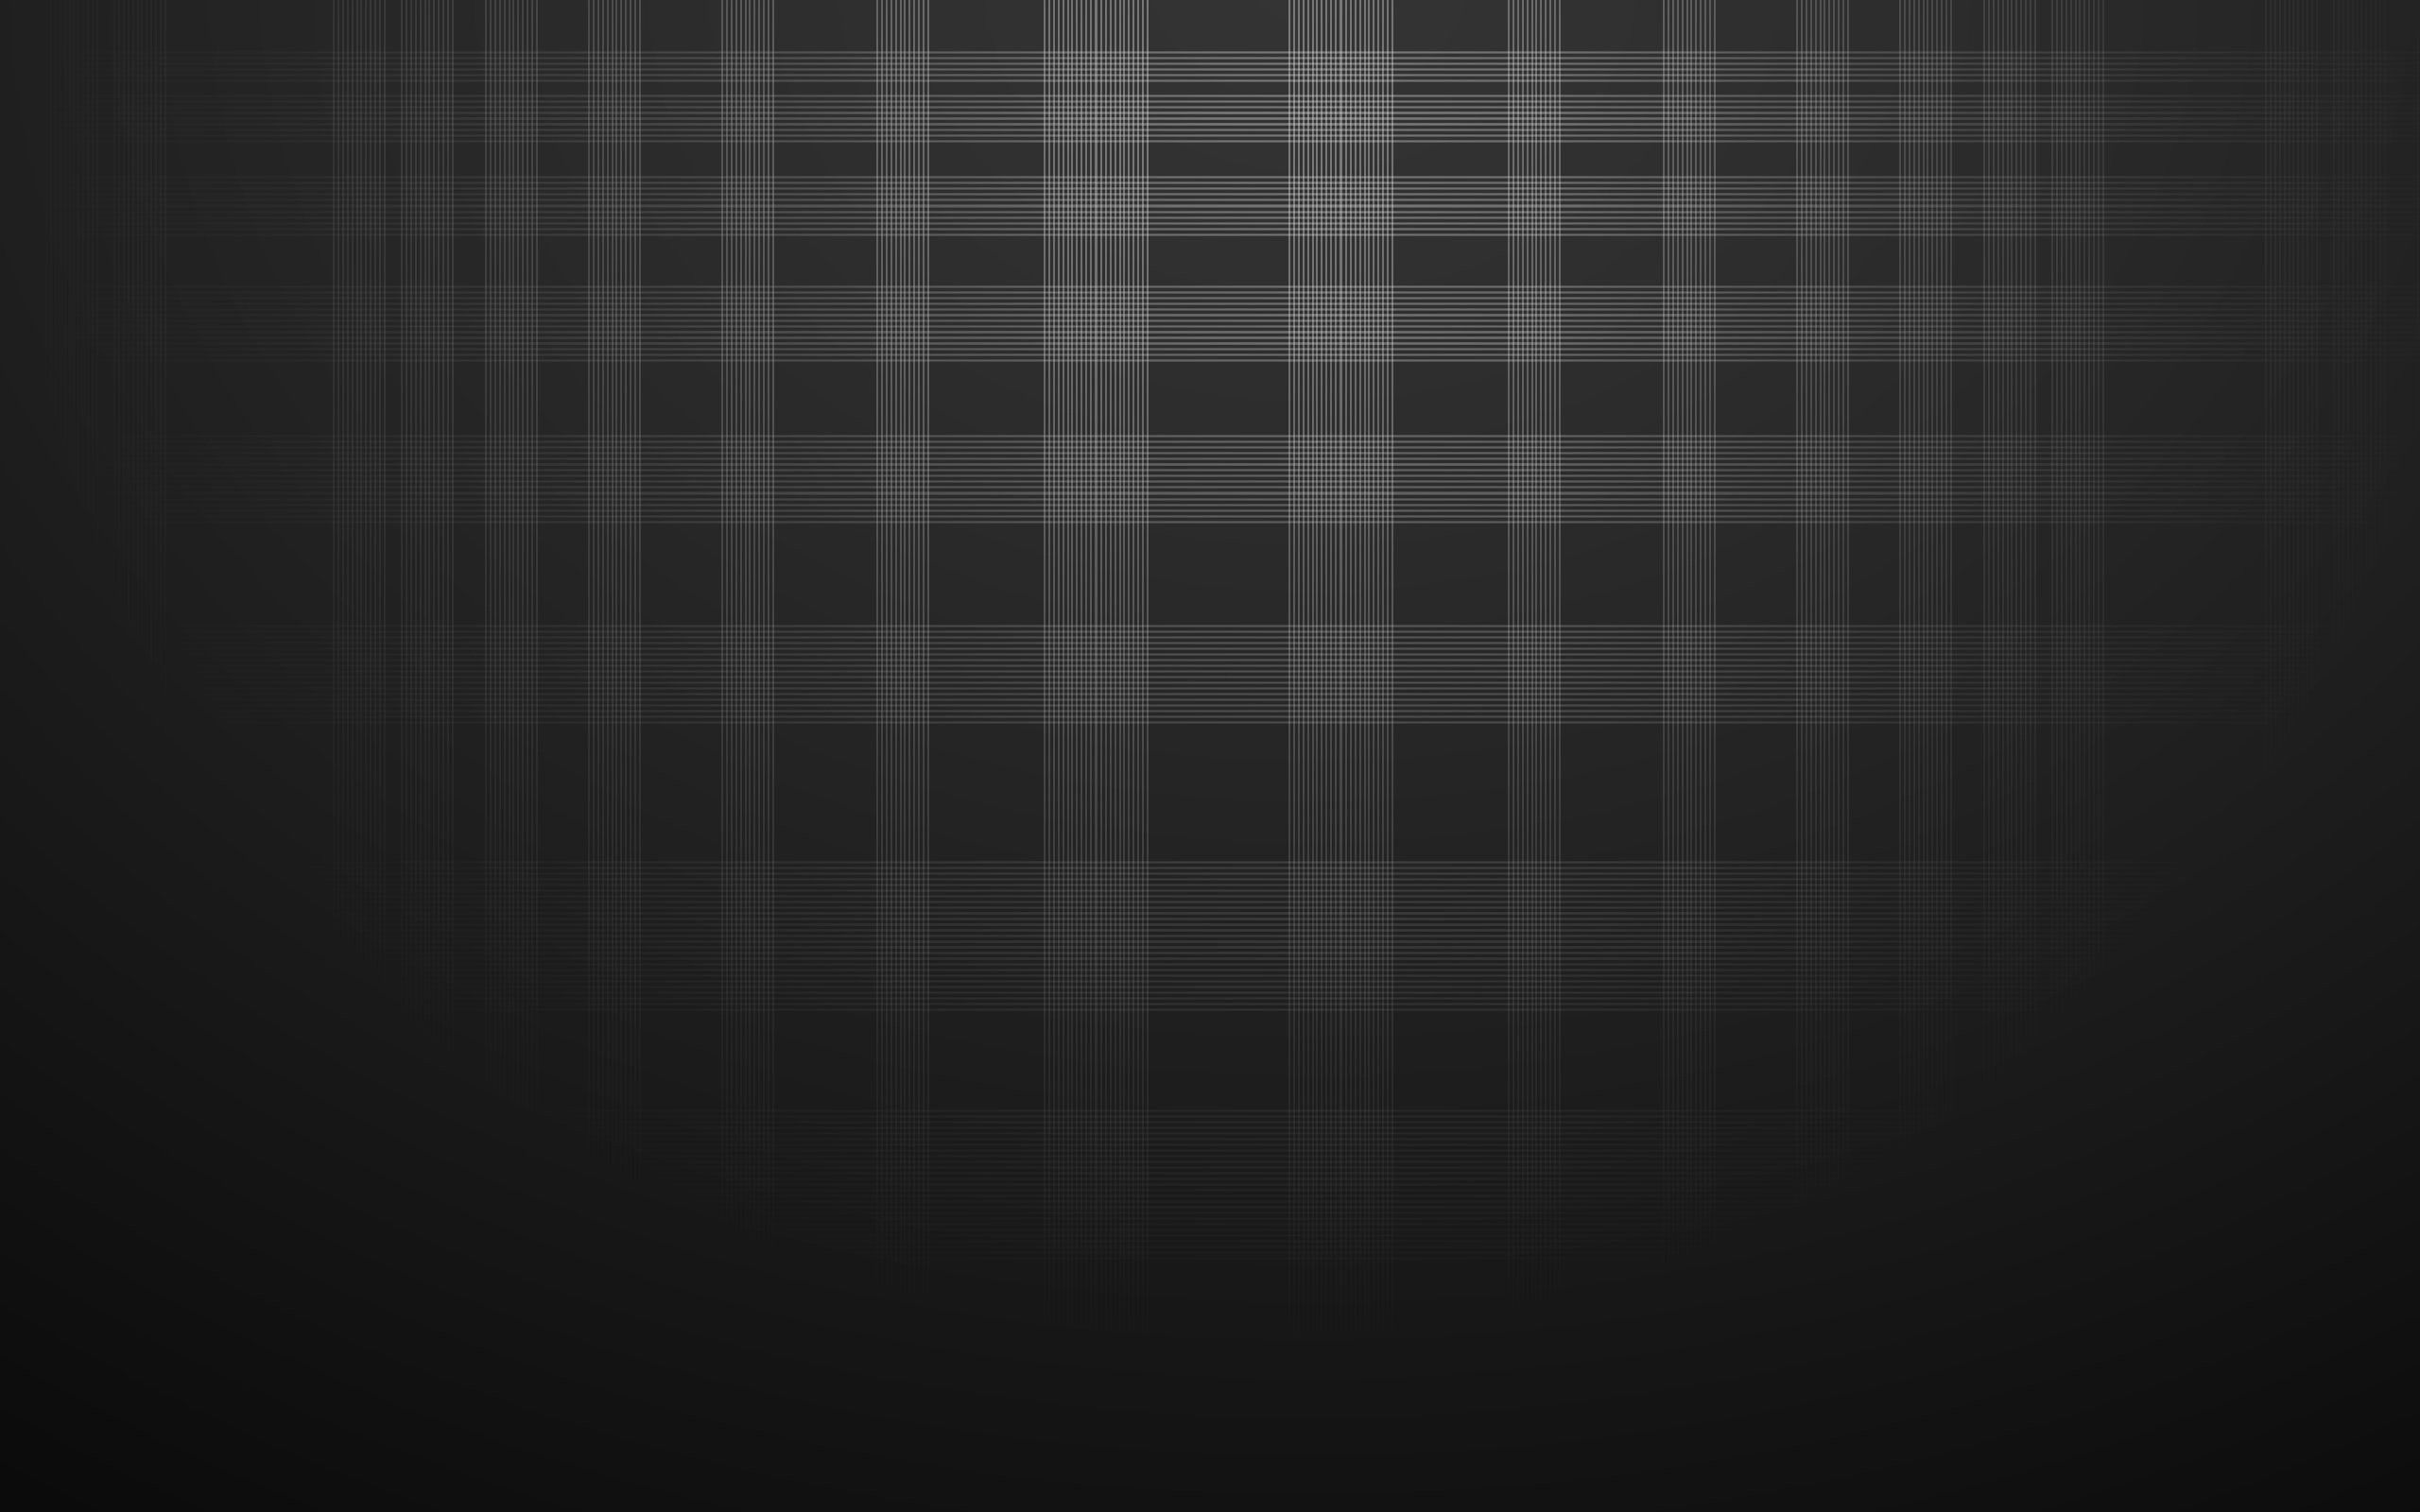 Black Shadow Wallpapers Top Free Black Shadow Backgrounds